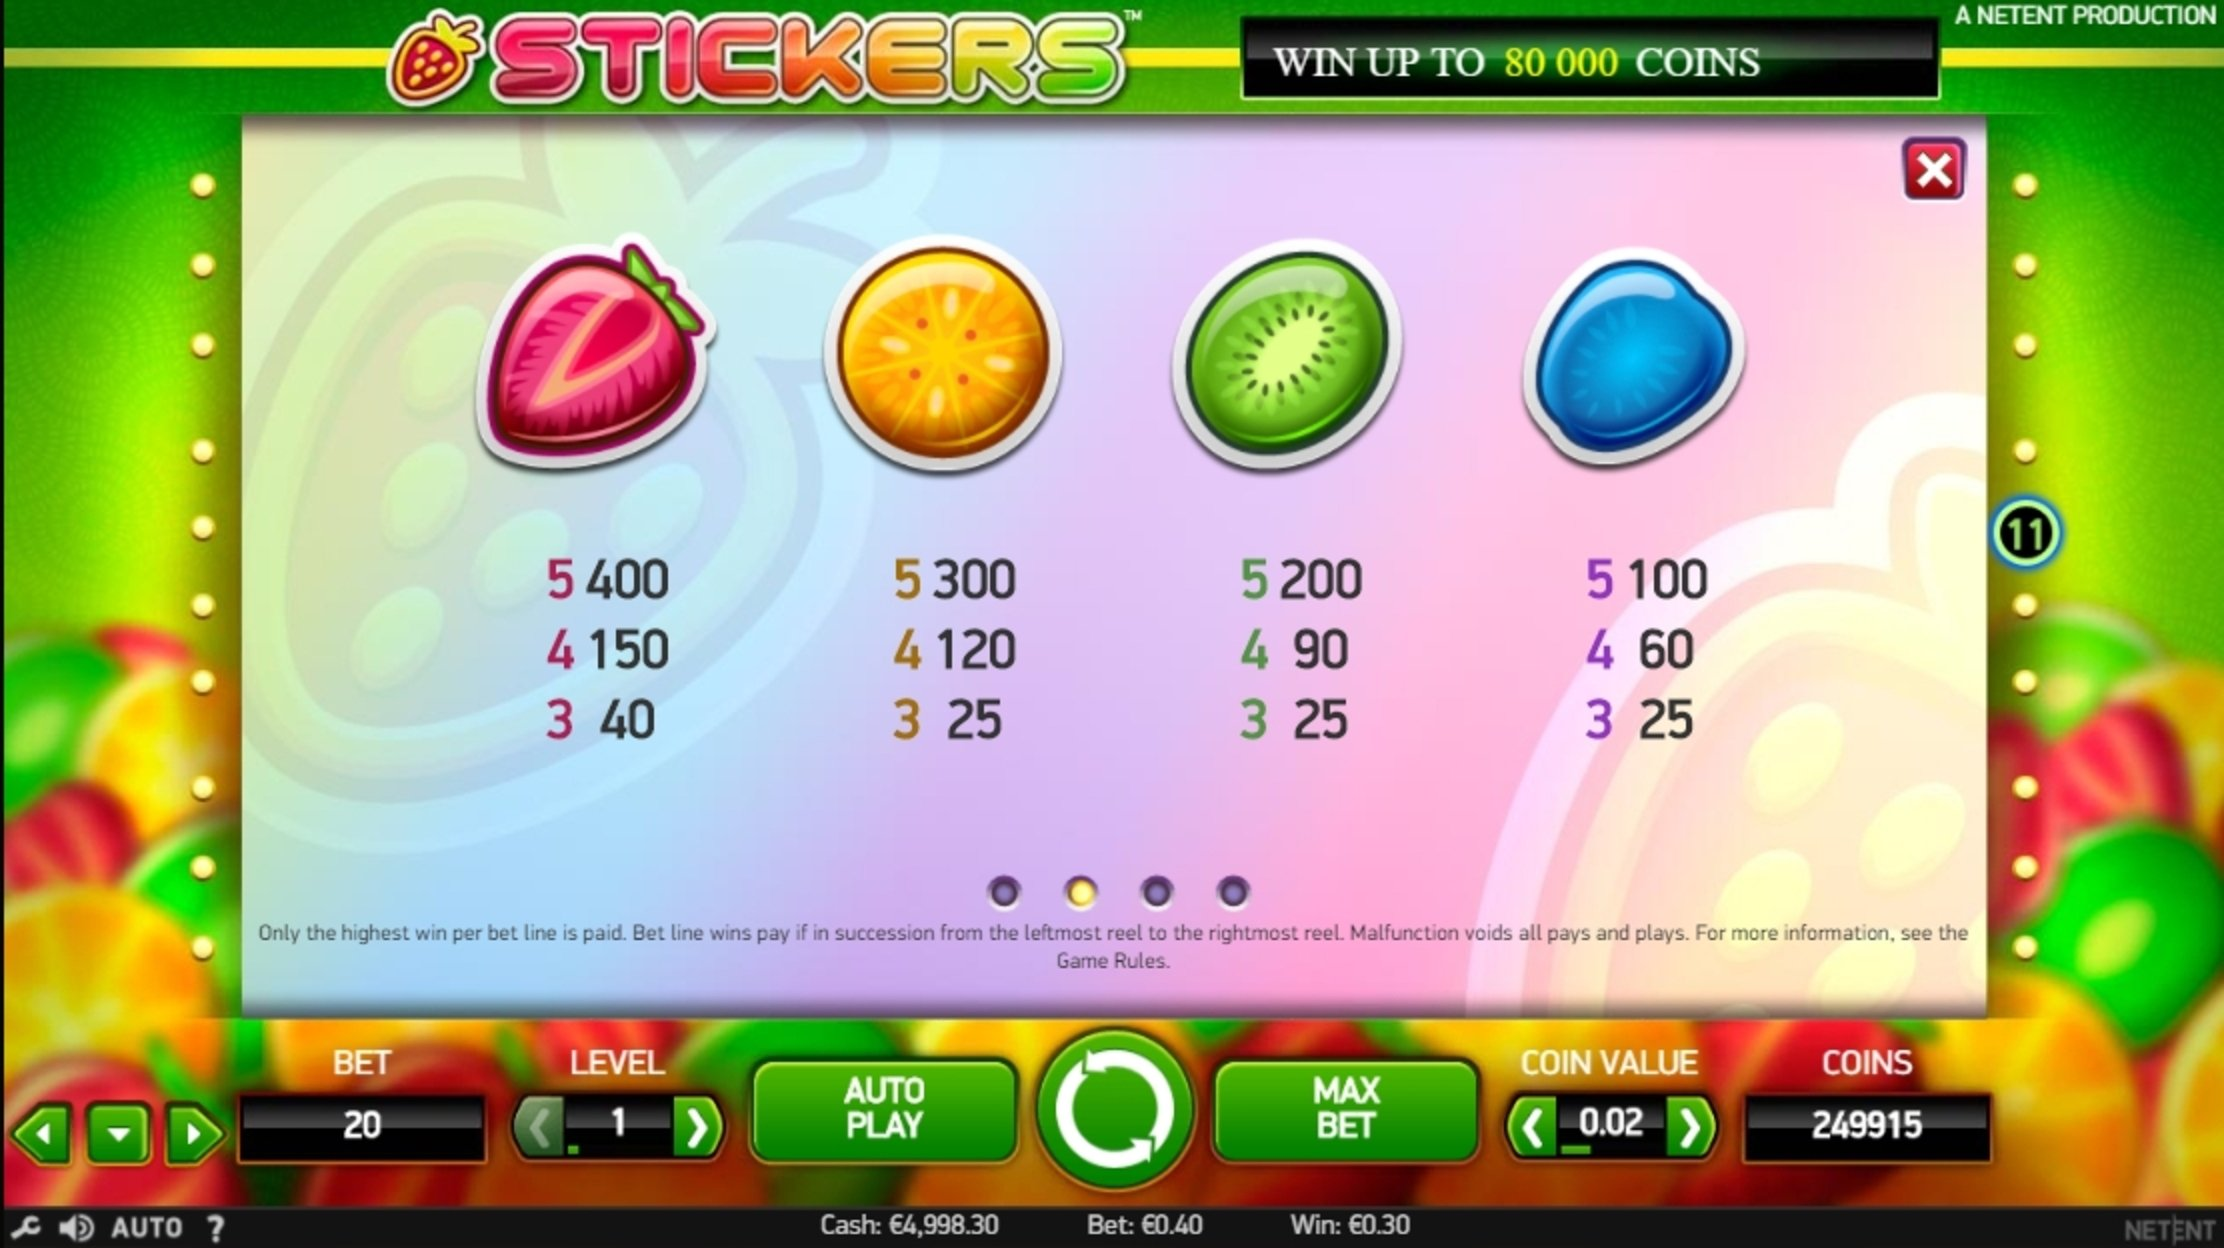 Info of Stickers Slot Game by NetEnt